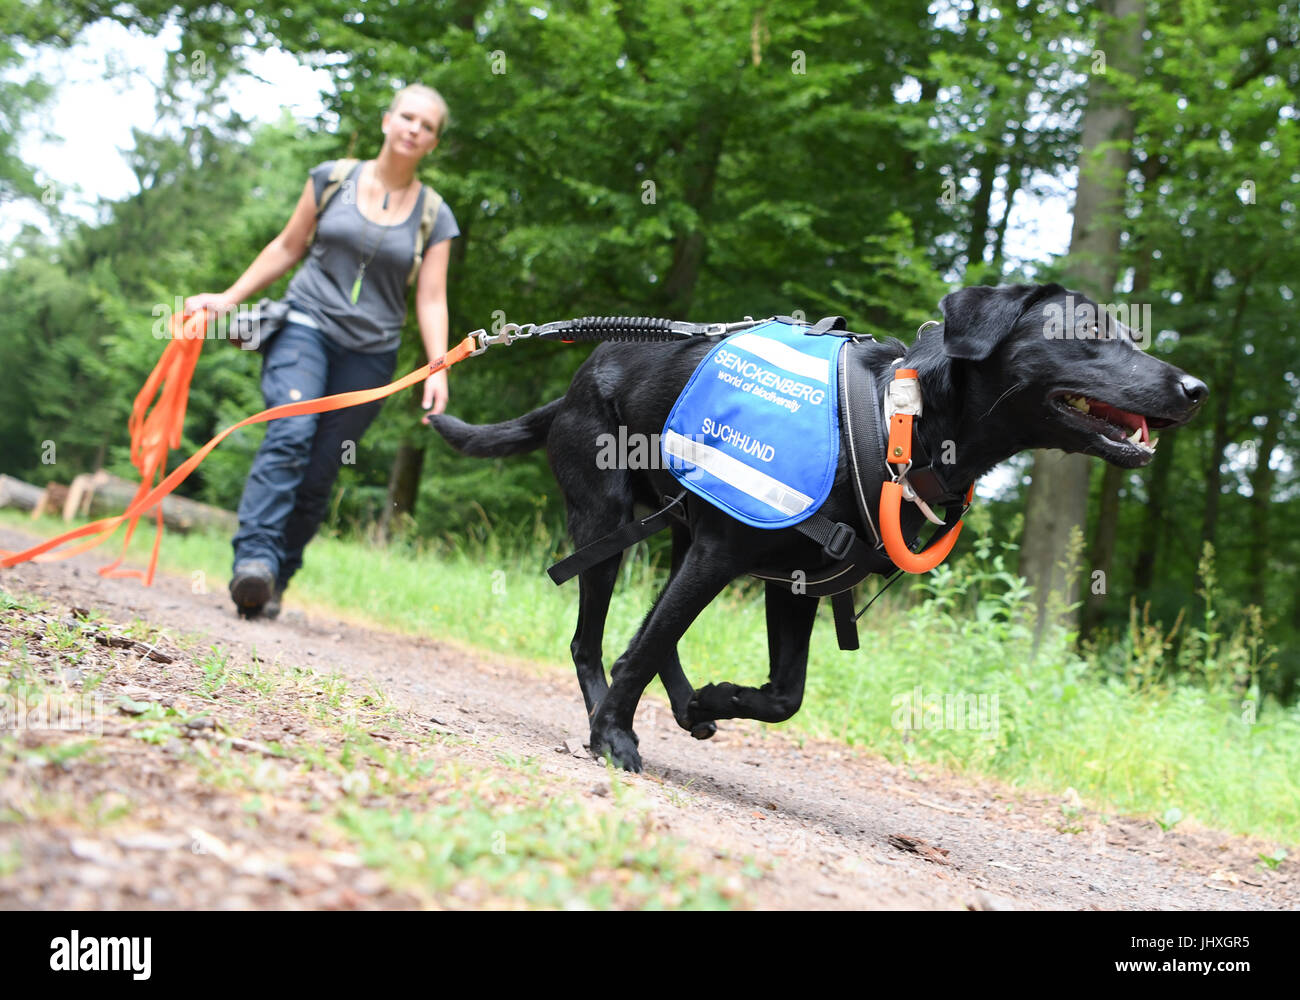 Gelnhausen, Germany. 23rd June, 2017. Labrador 'Maple' is being trained by Laura Hollerbach, research assistant - Stock Image